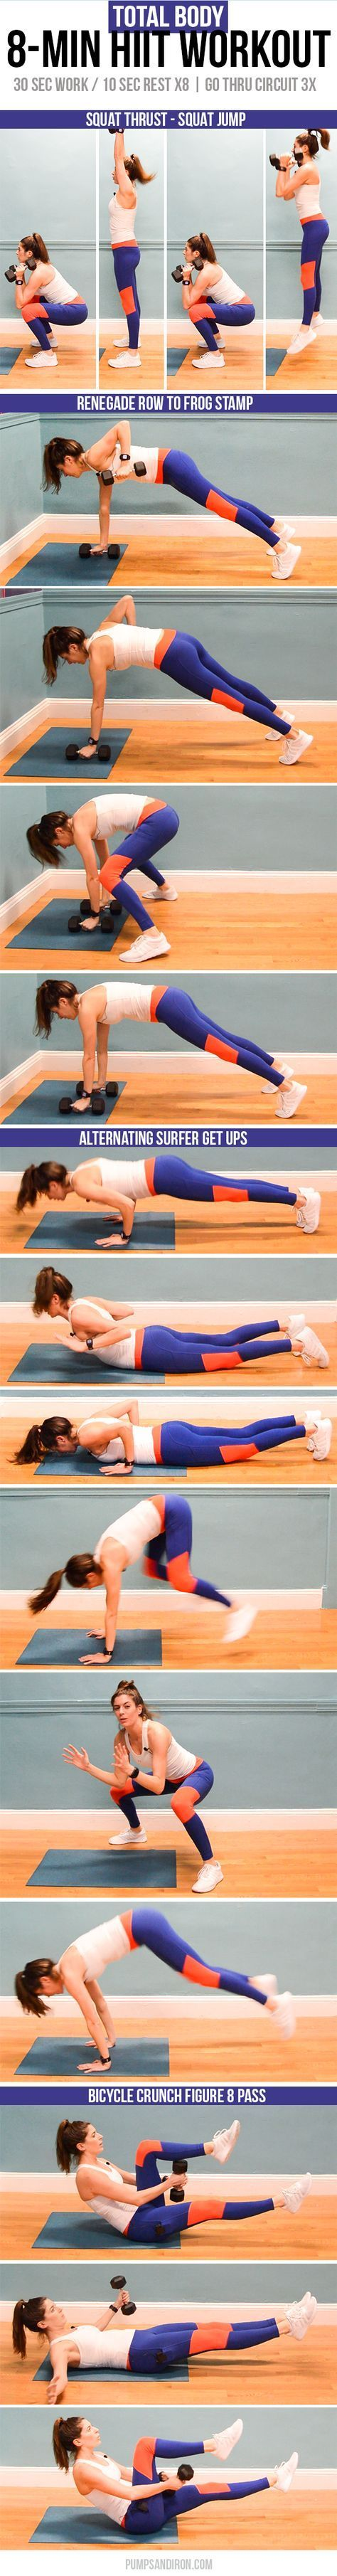 8-Minute HIIT Workout